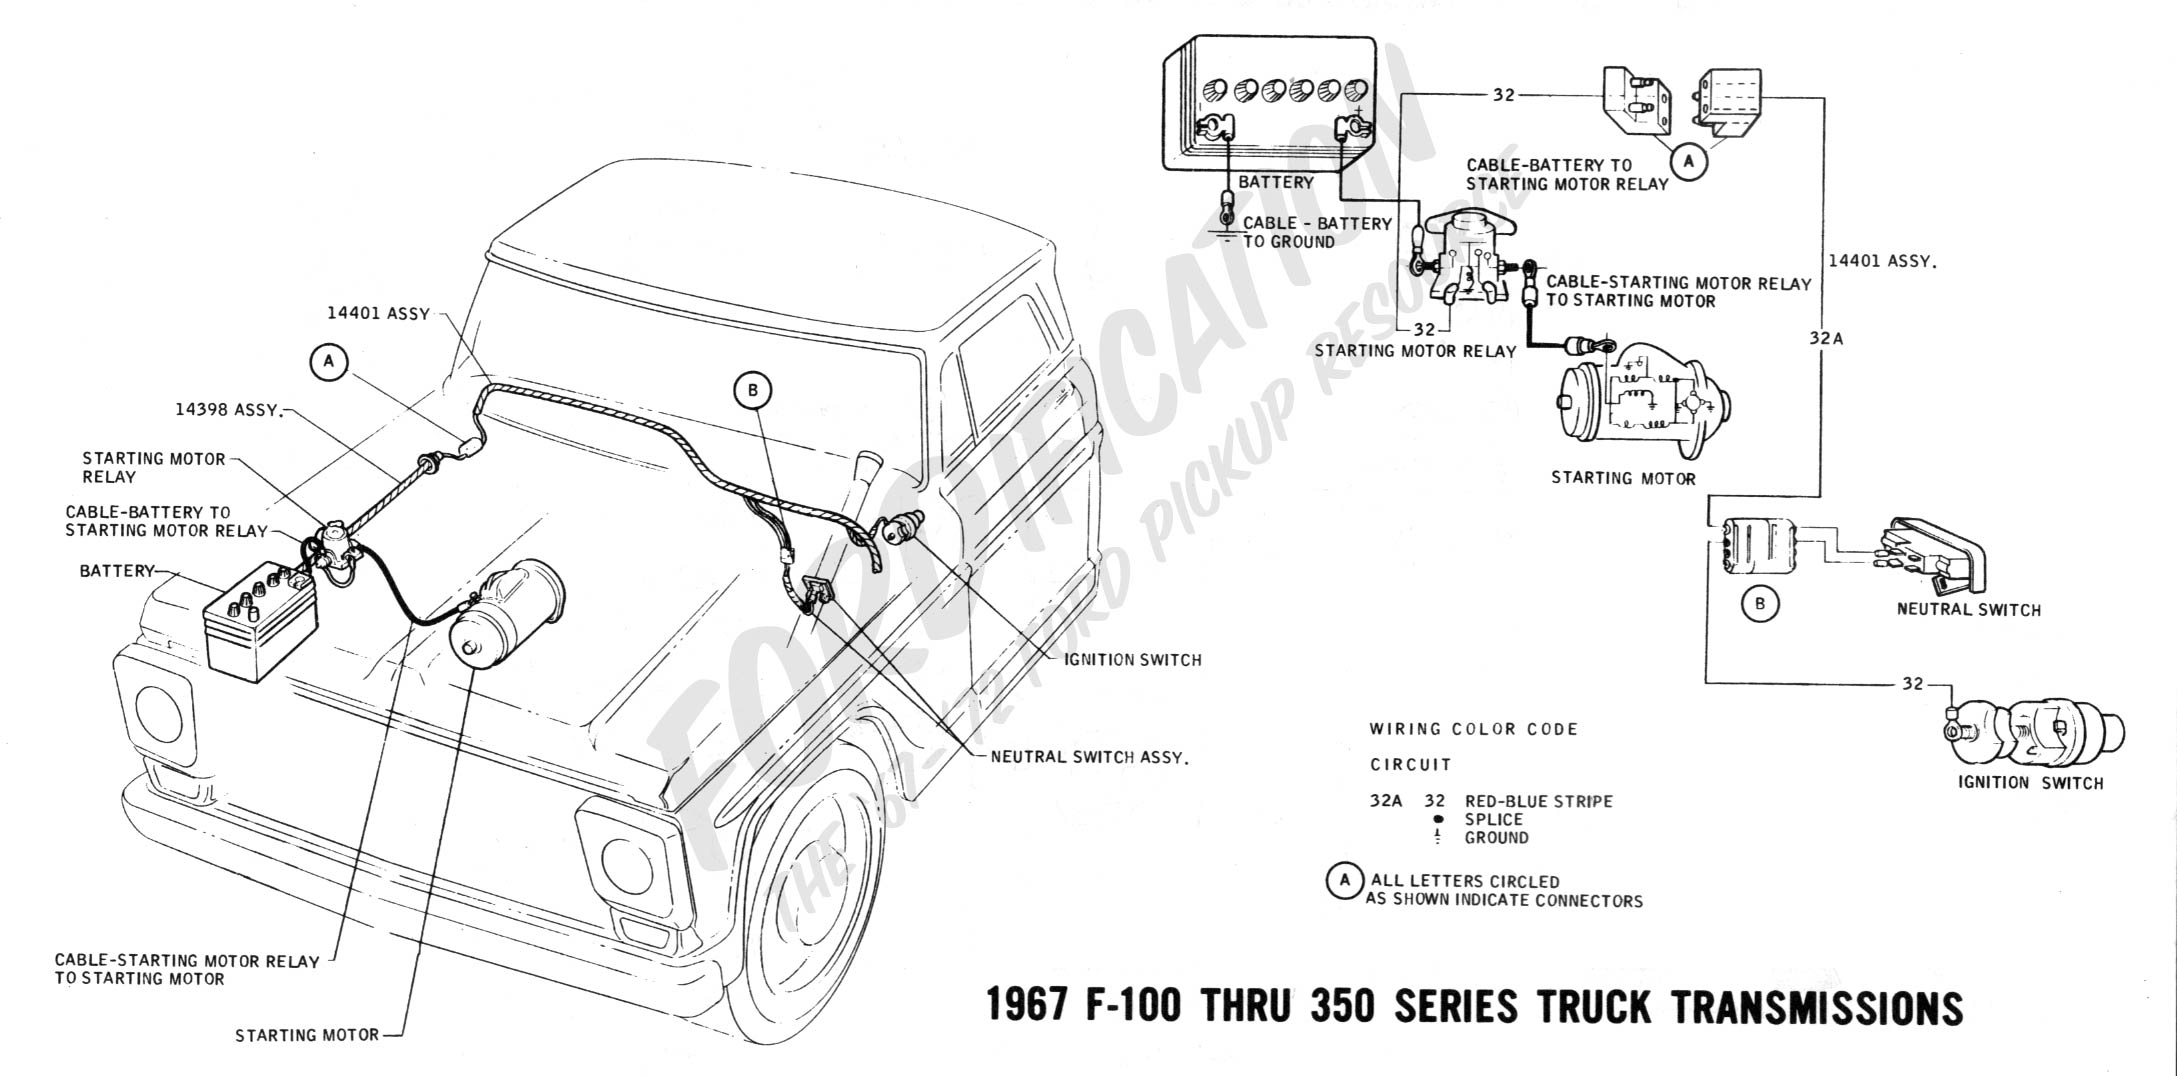 1980 Chevy Starter Wiring Archive Of Automotive Diagram 5 Post Ignition Mtd Solenoid 1976 Ford Truck Free Detailed Schematics Rh Antonartgallery Com